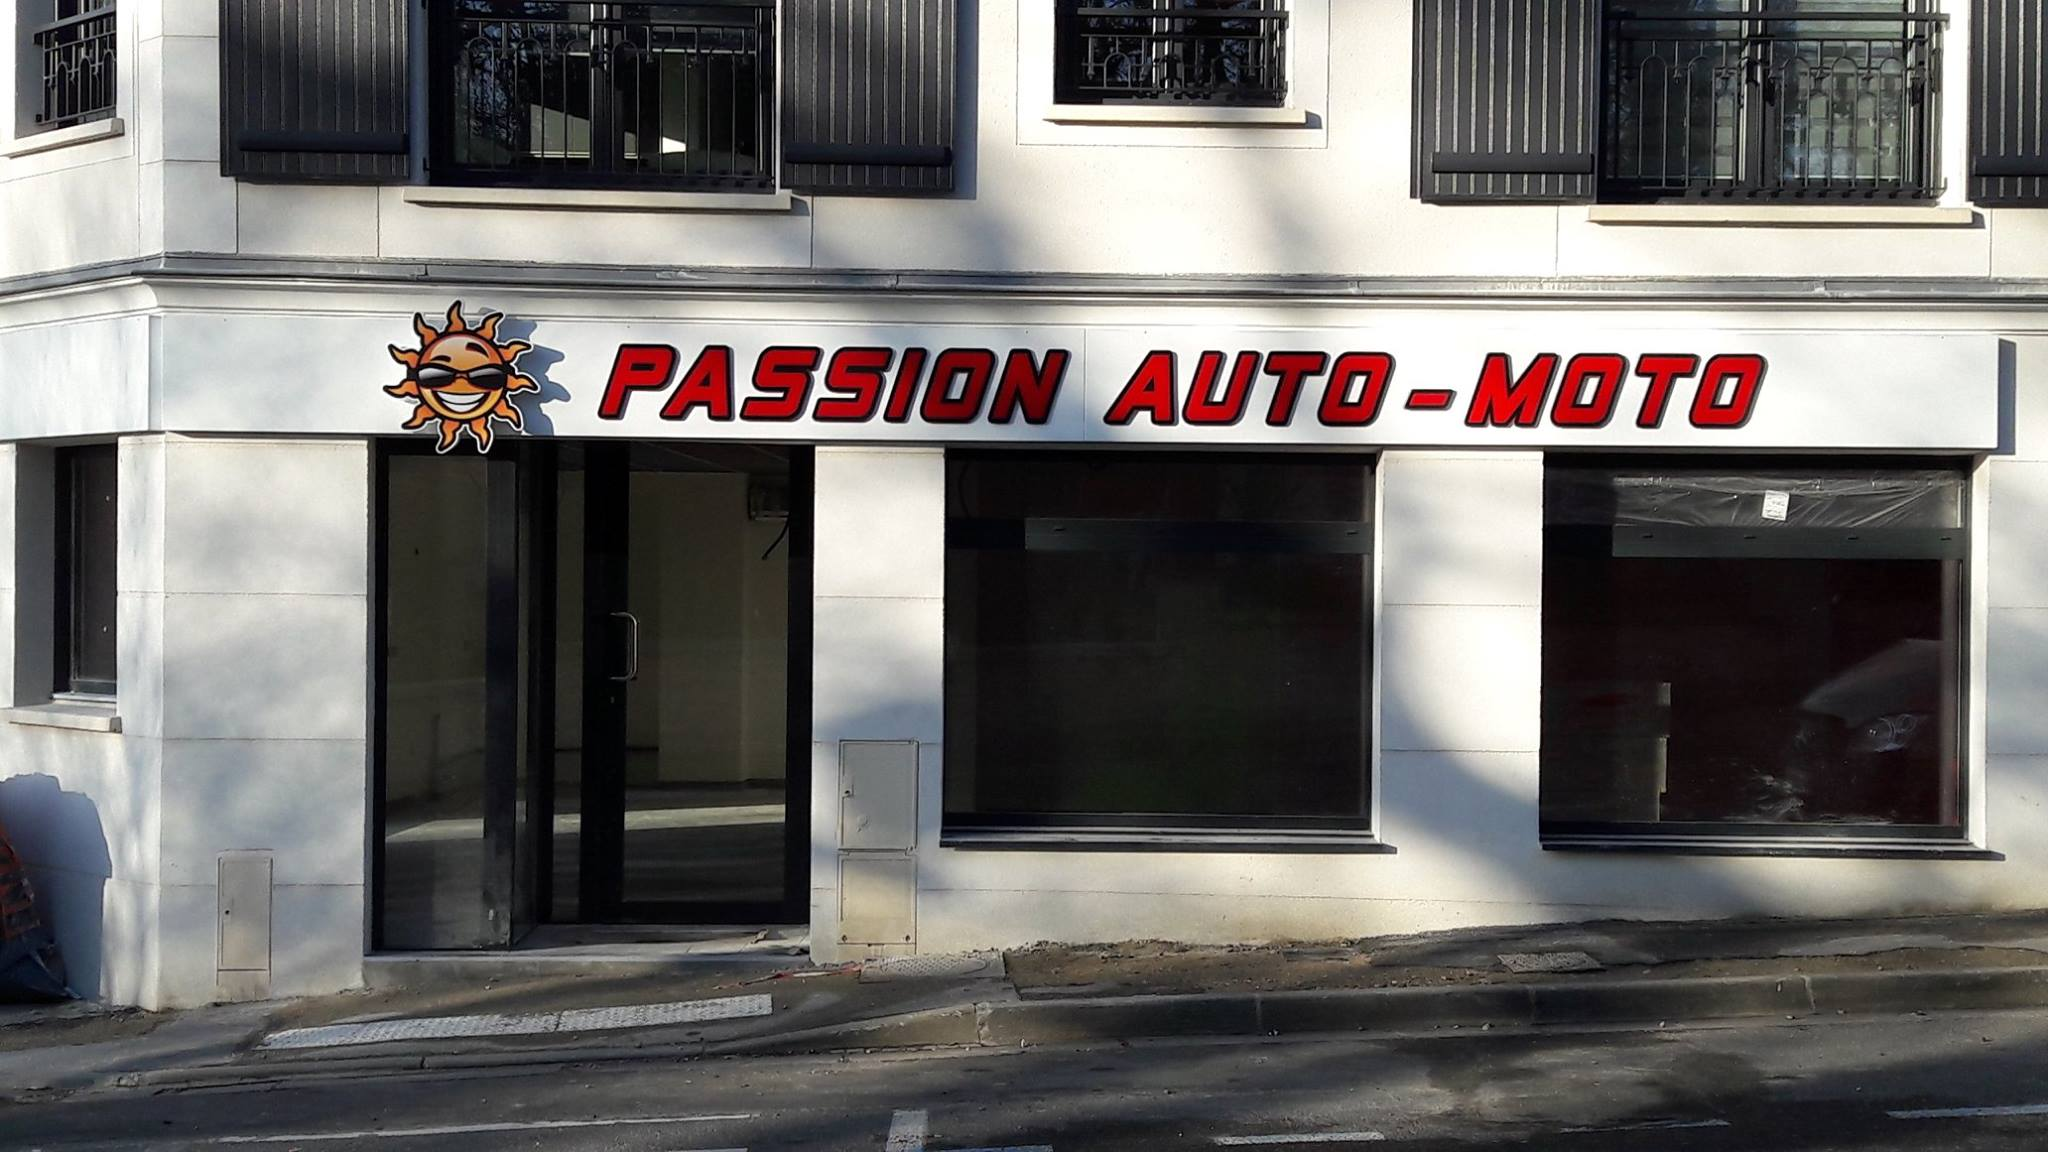 Passion-auto-moto-villecresnes